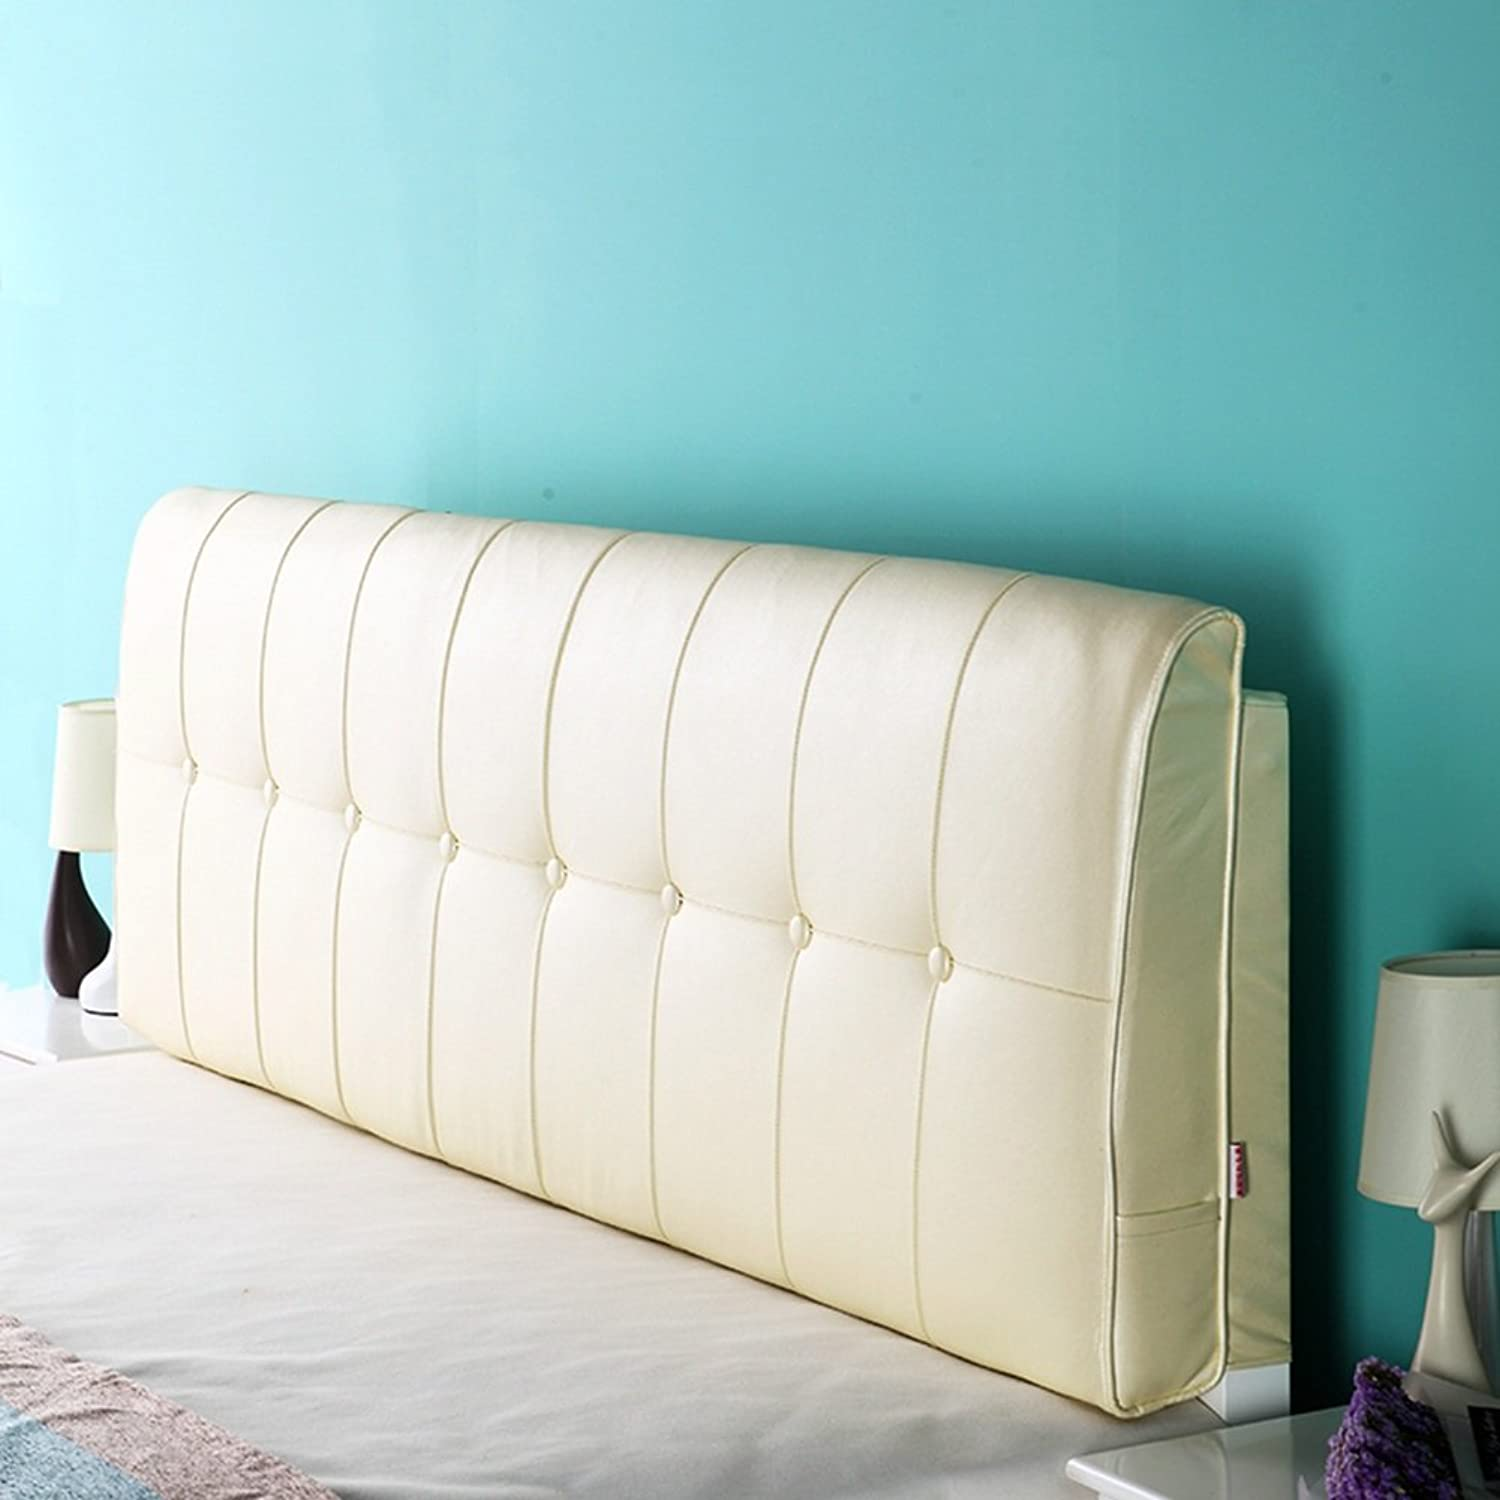 WENZHE Upholstered Fabric Headboard Bedside Cushion Pads Cover Bed Wedges Backrest Waist Pad Large Back Multifunction Soft Case Anti-collision Head, There Is Headboard   No Headboard, 4 colors, 5 Sizes ( color   1  , Size   With headboard-190cm )